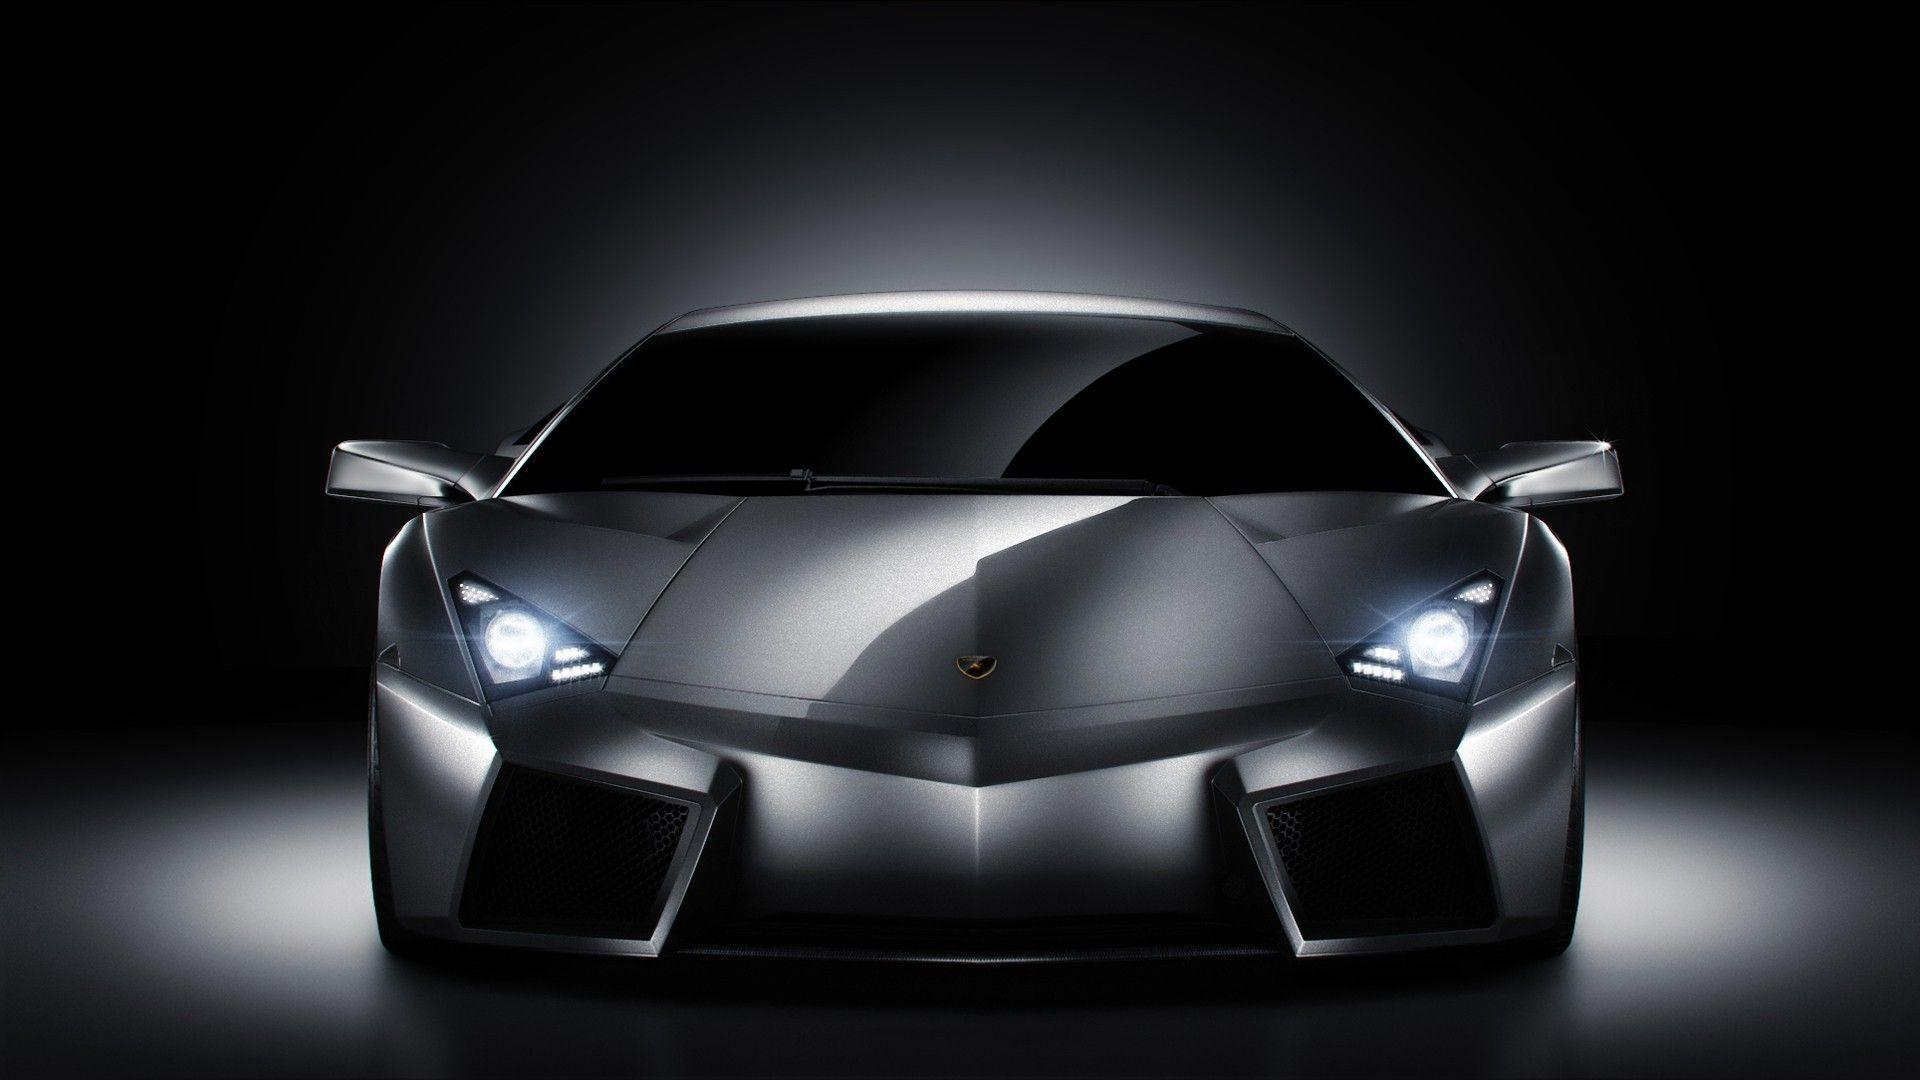 Hd <b>Lamborghini Wallpaper</b> - WallpaperSafari